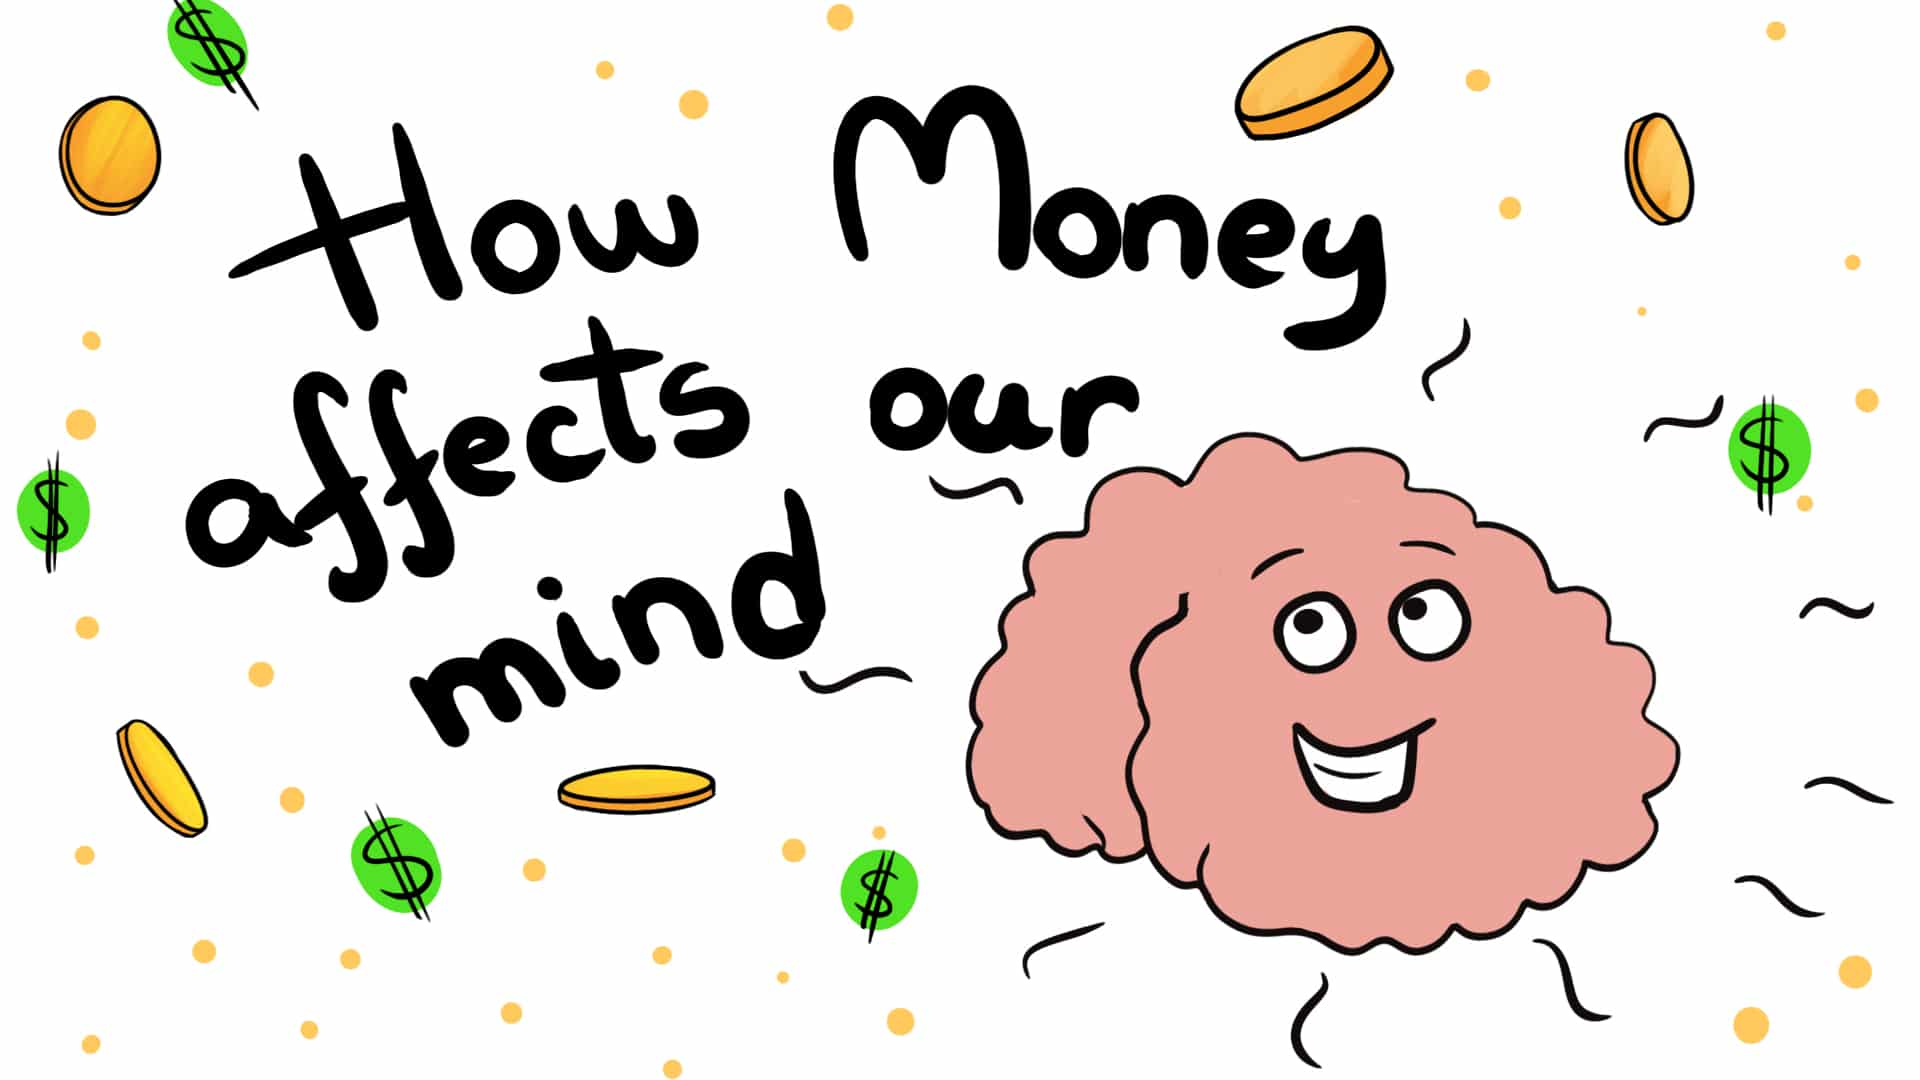 How Money Affects our Mind - 4 Things Money Does to Your